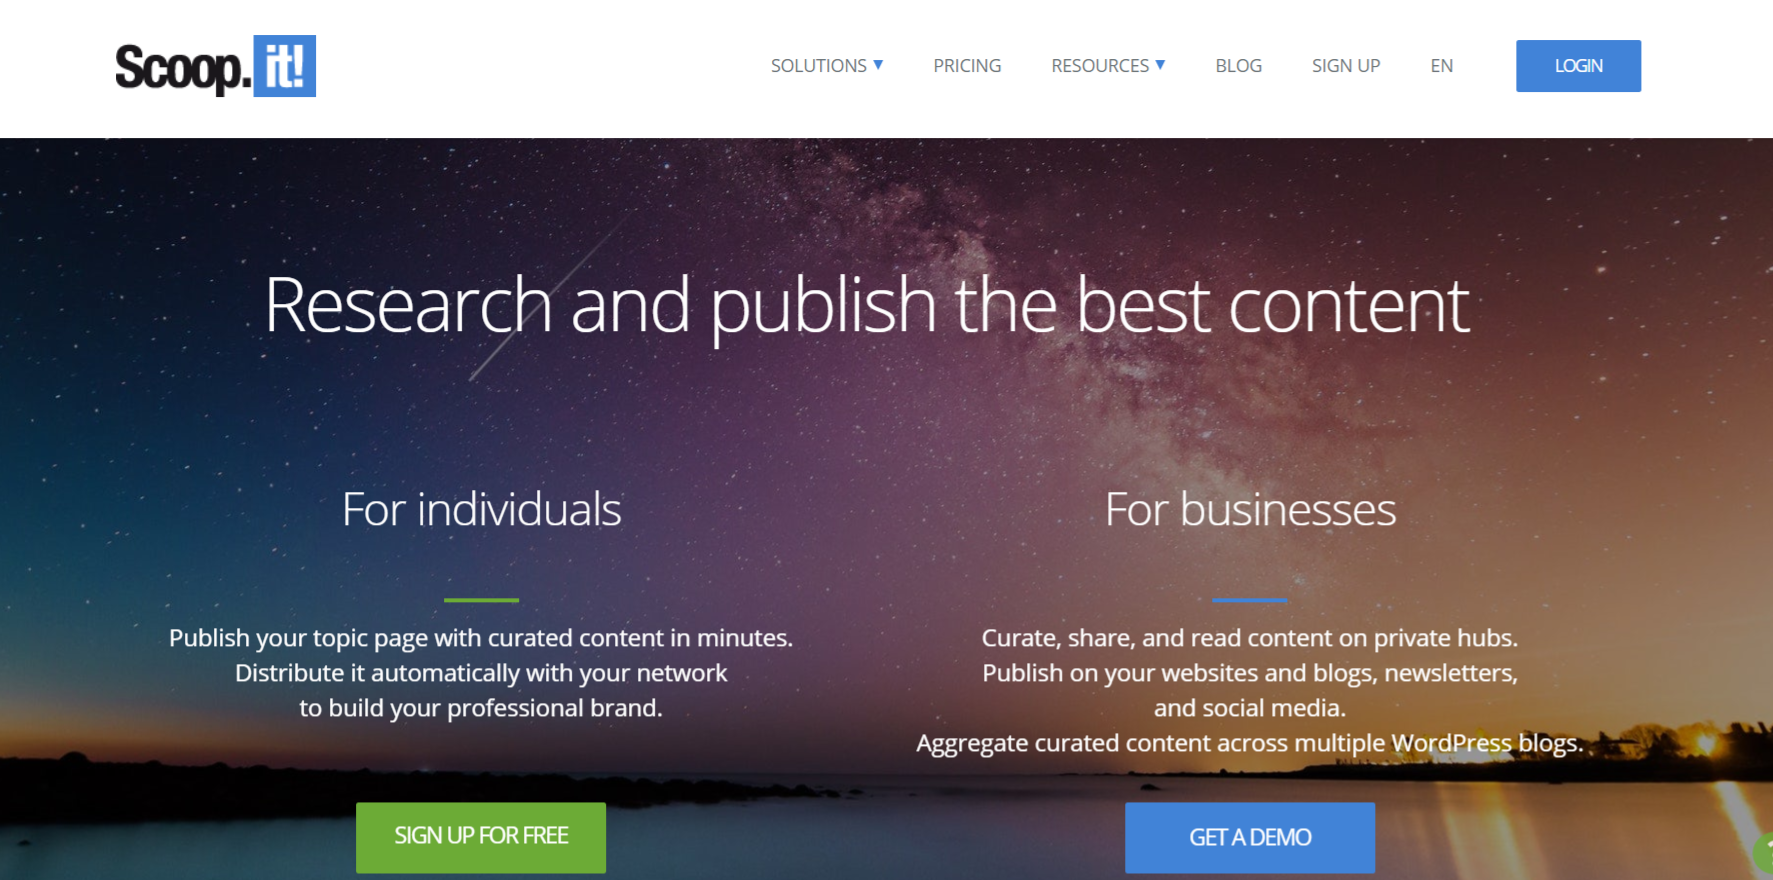 Scoop.it: Collaborative bookmarking tools